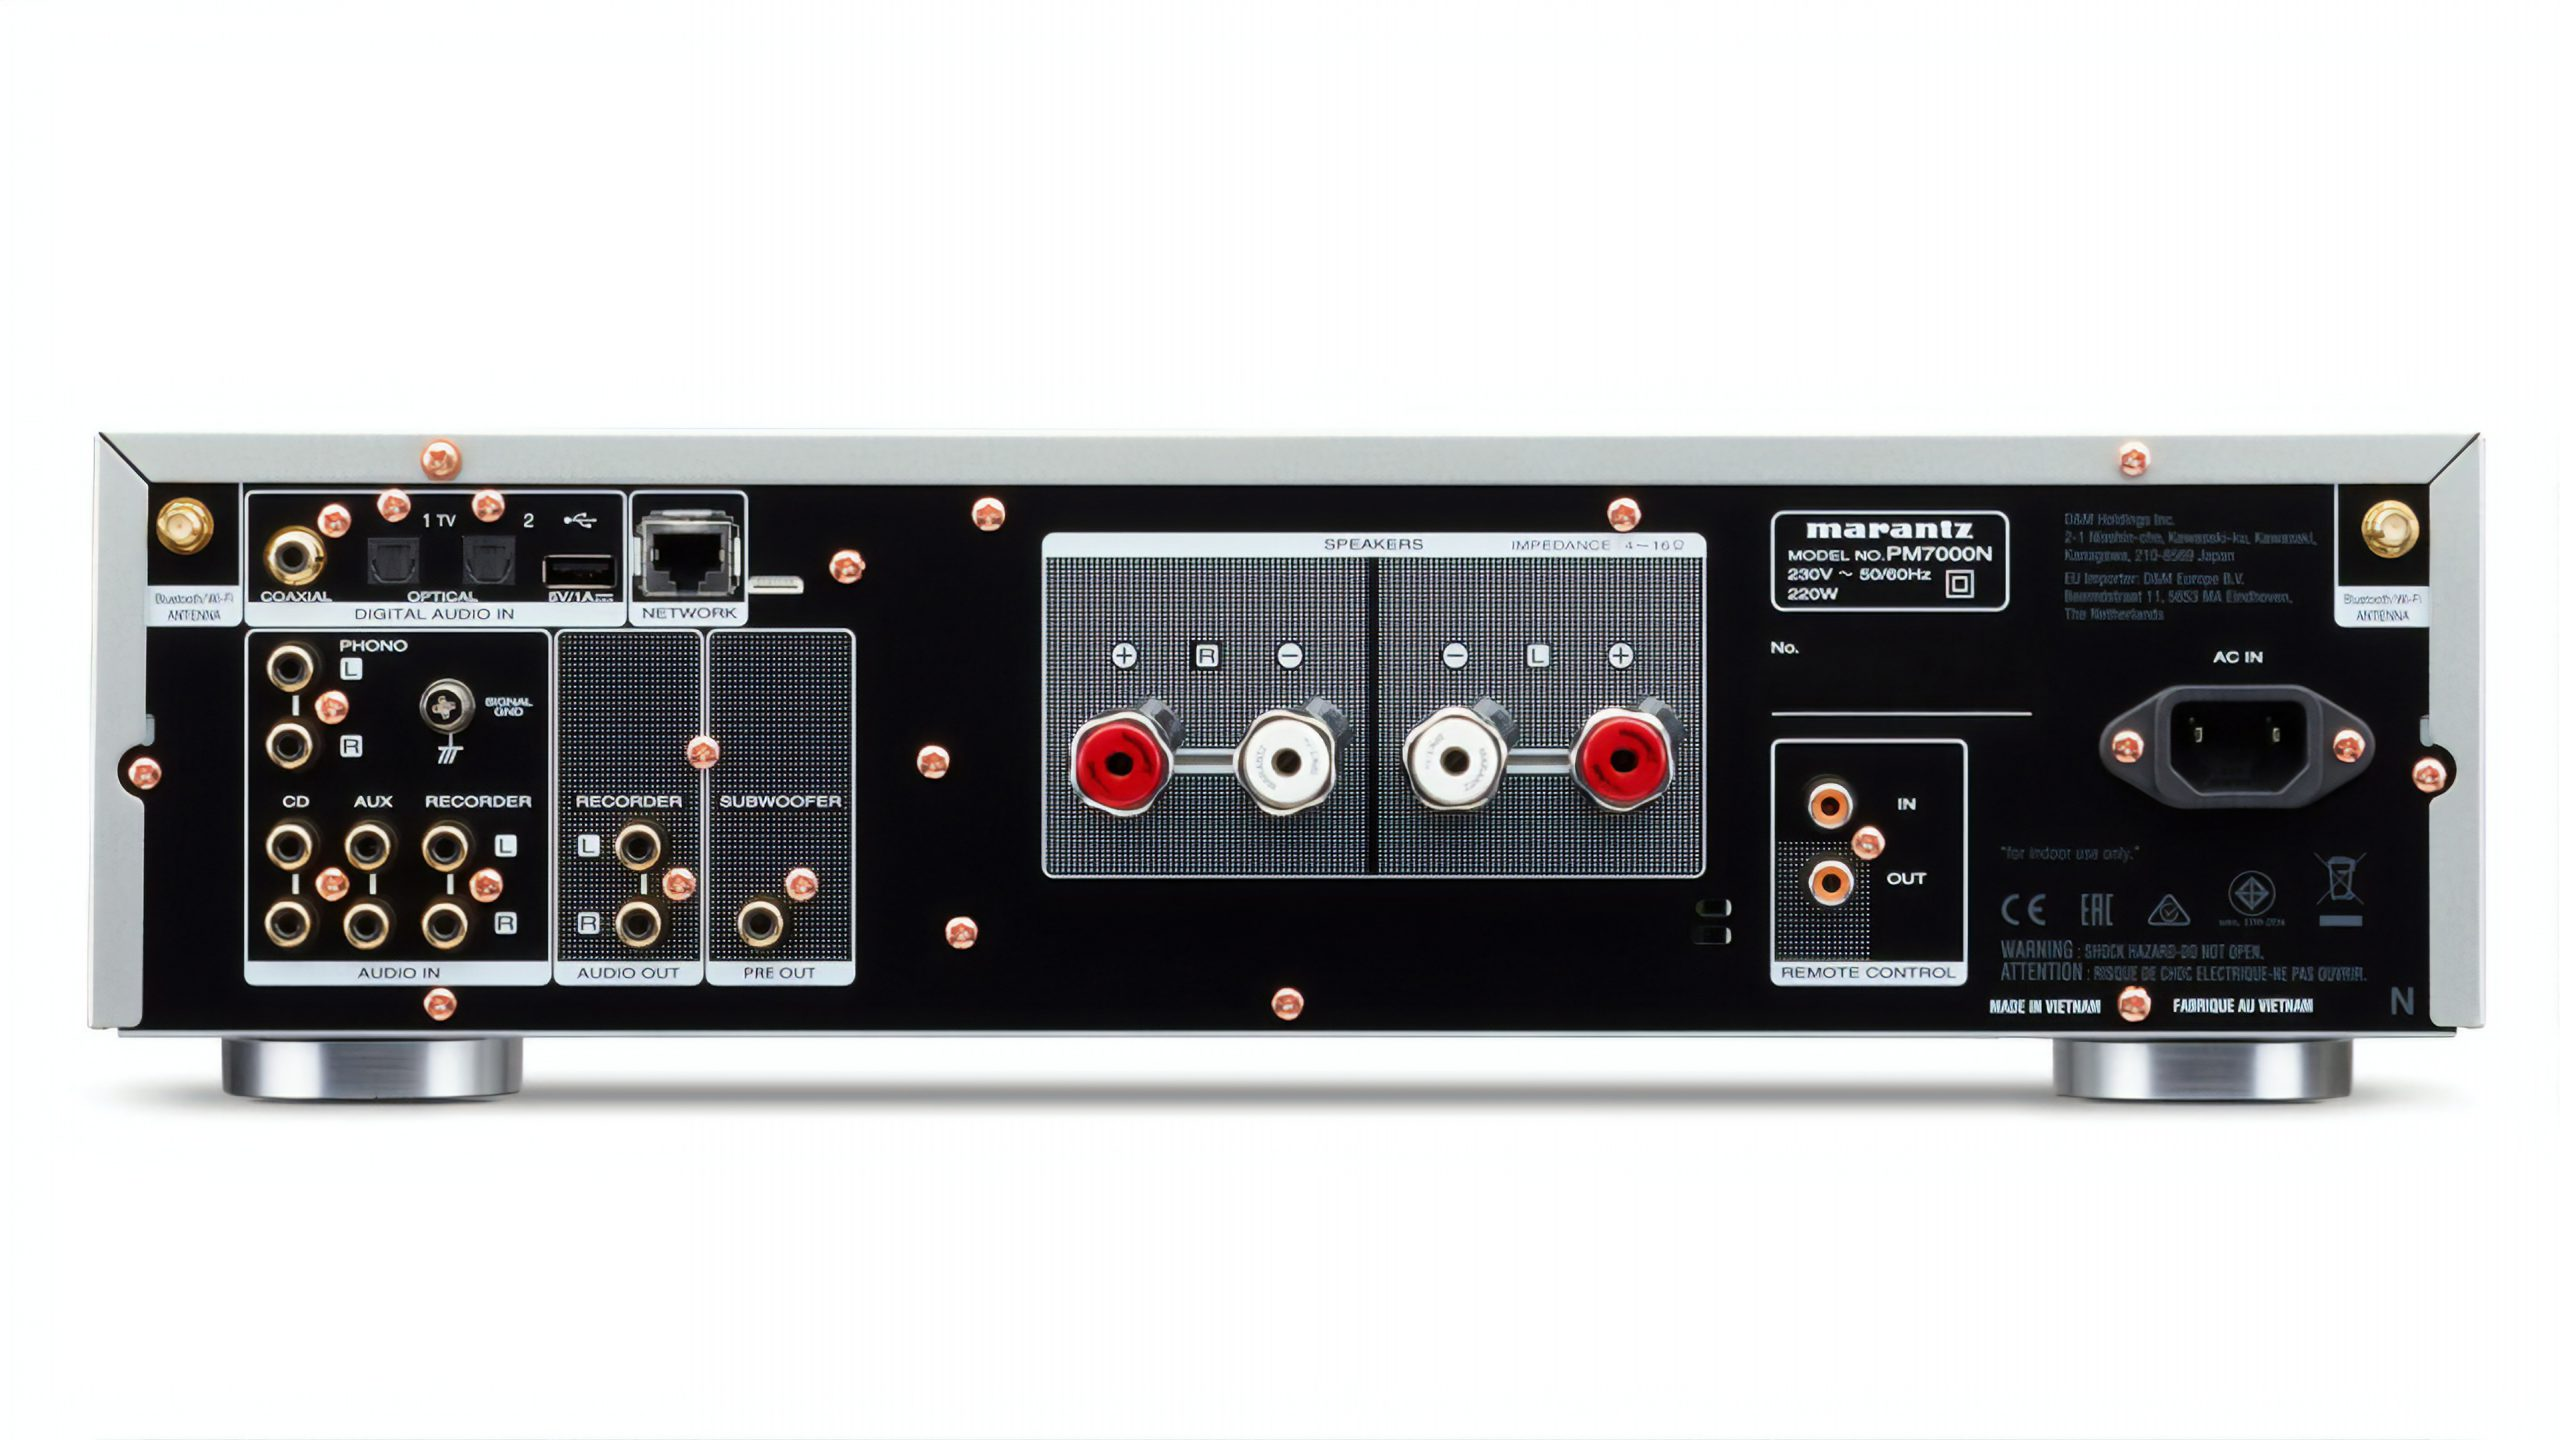 Marantz pm7000n rear